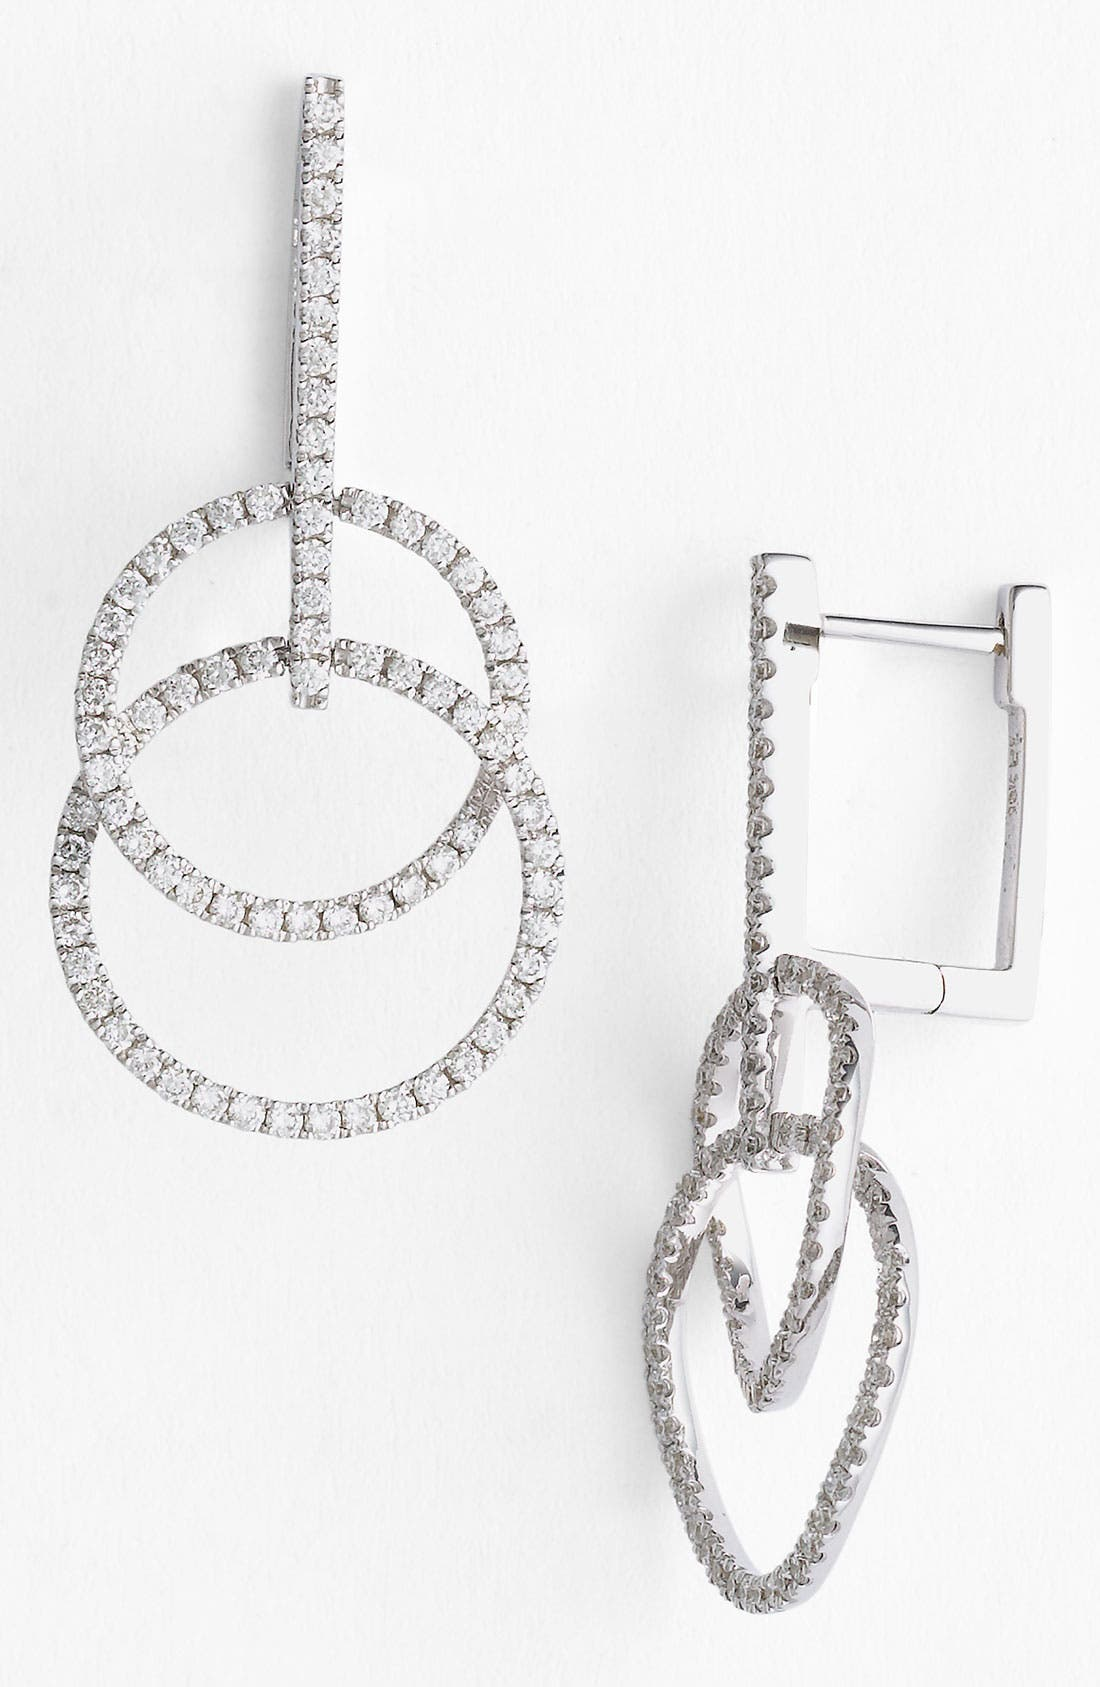 Alternate Image 1 Selected - Bony Levy 'Circle Links' Diamond Earrings (Nordstrom Exclusive)